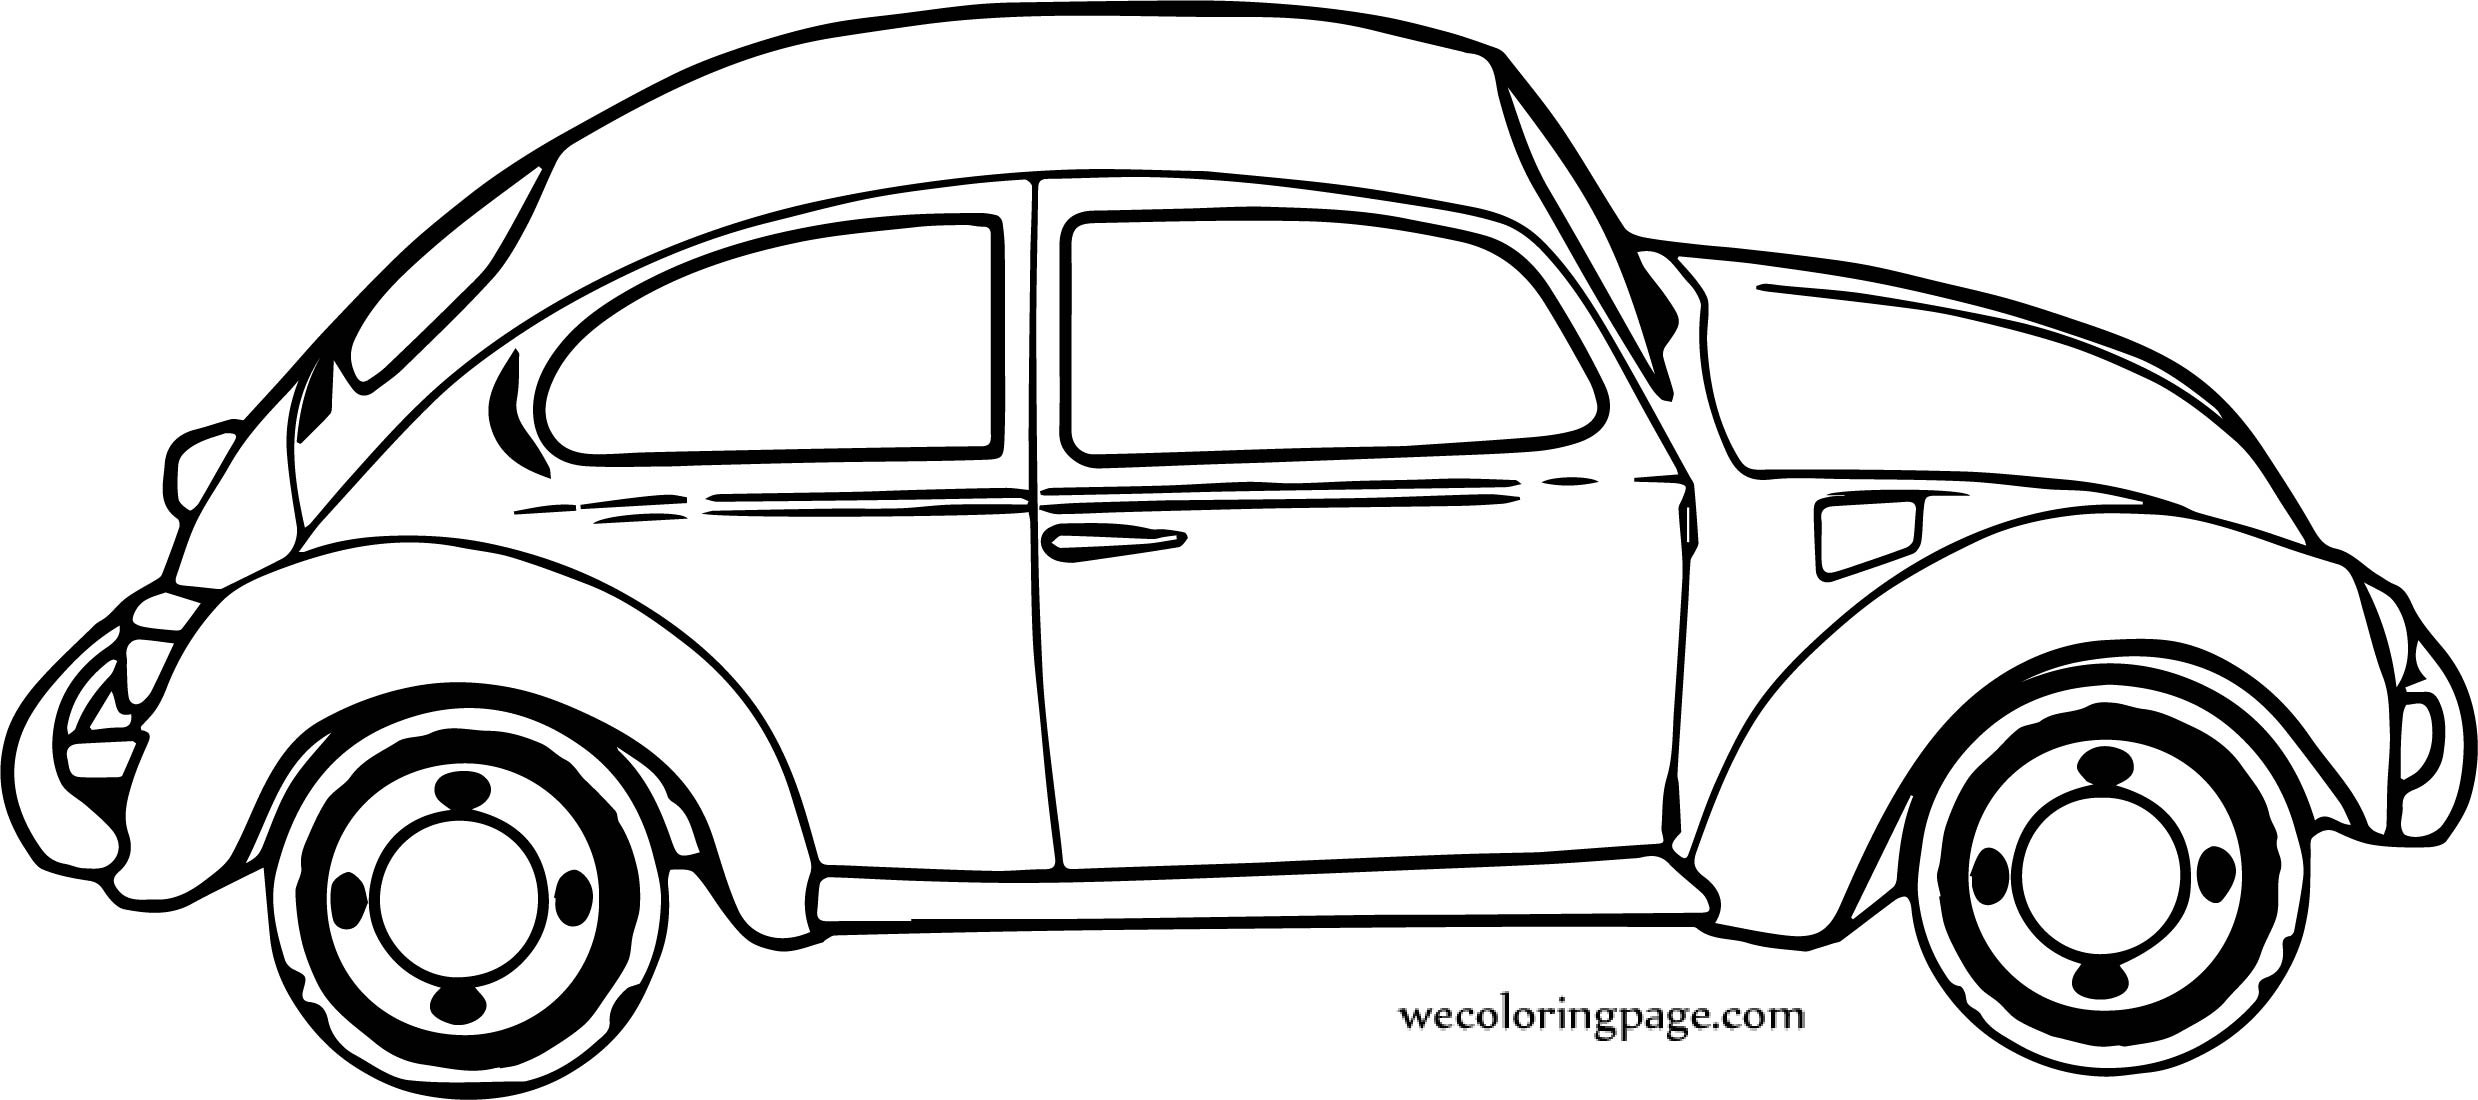 Port Car Coloring Page